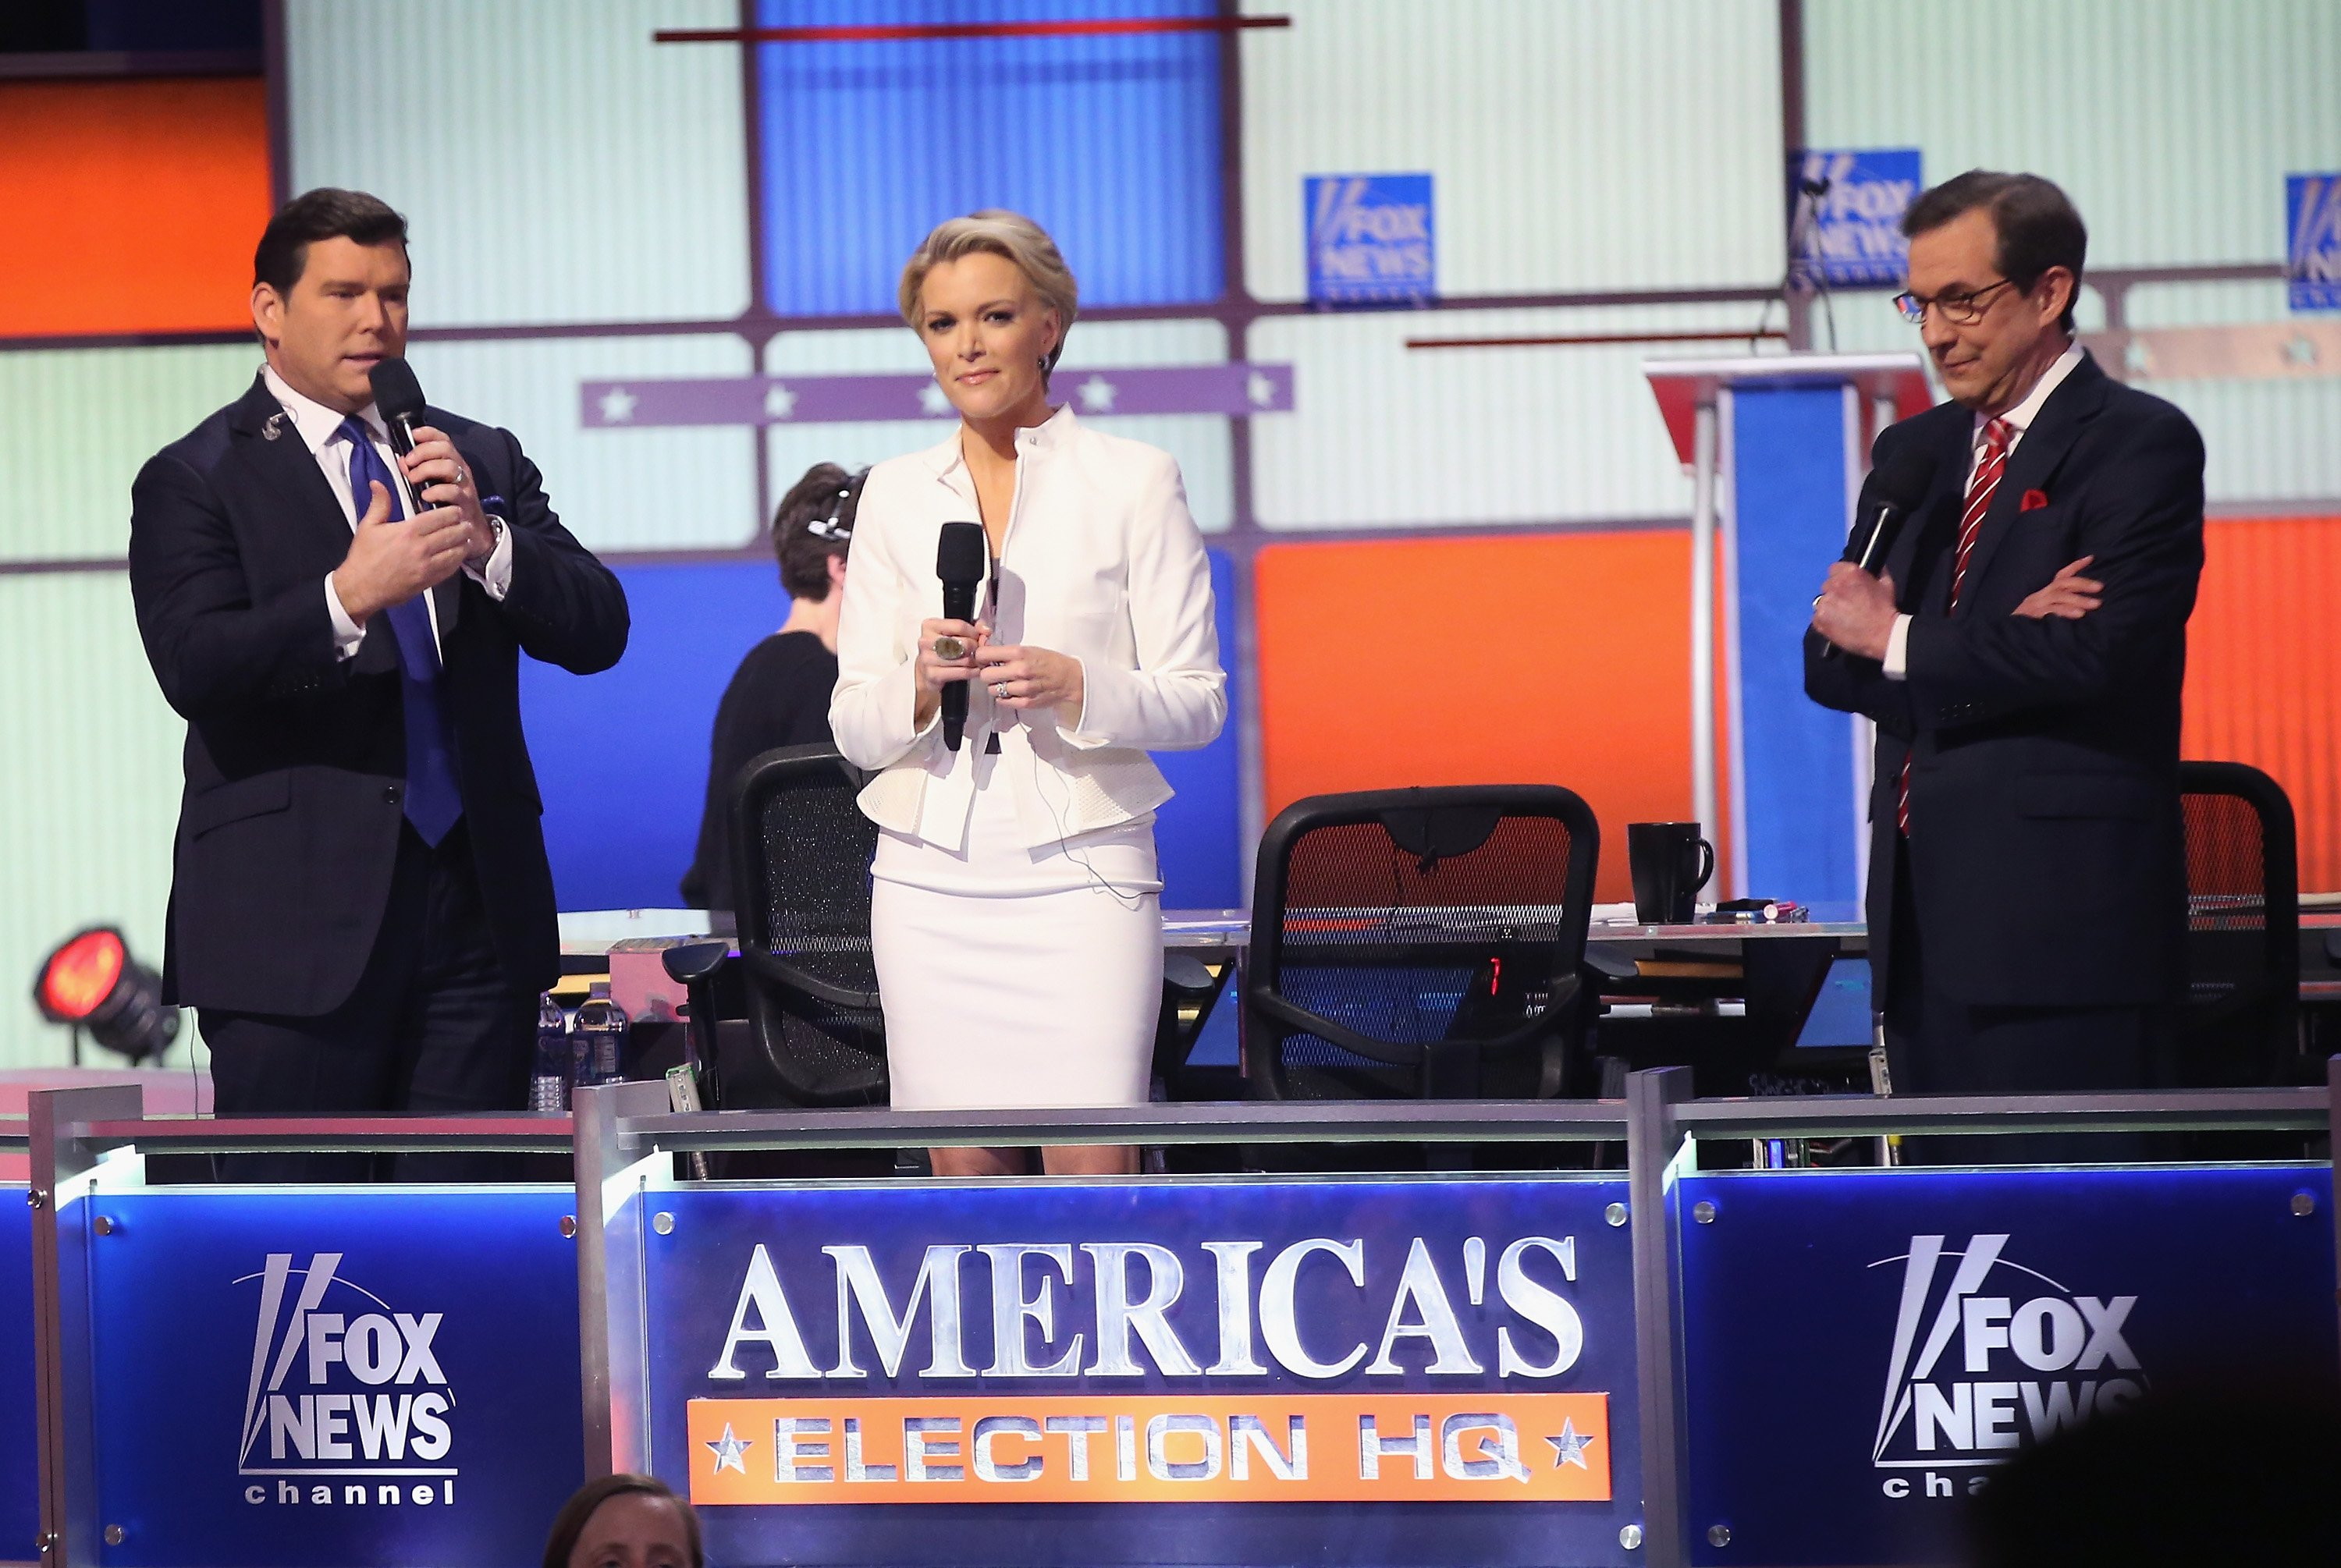 DETROIT, MI - MARCH 03: Moderators (Lto R) Bret Baier, Megyn Kelly and Chris Wallace are introduced at the Republican presidential debate sponsored by Fox News at the Fox Theatre on March 3, 2016 in Detroit, Michigan. Voters in Michigan will go to the polls March 8 for the State's primary. (Photo by Scott Olson/Getty Images)